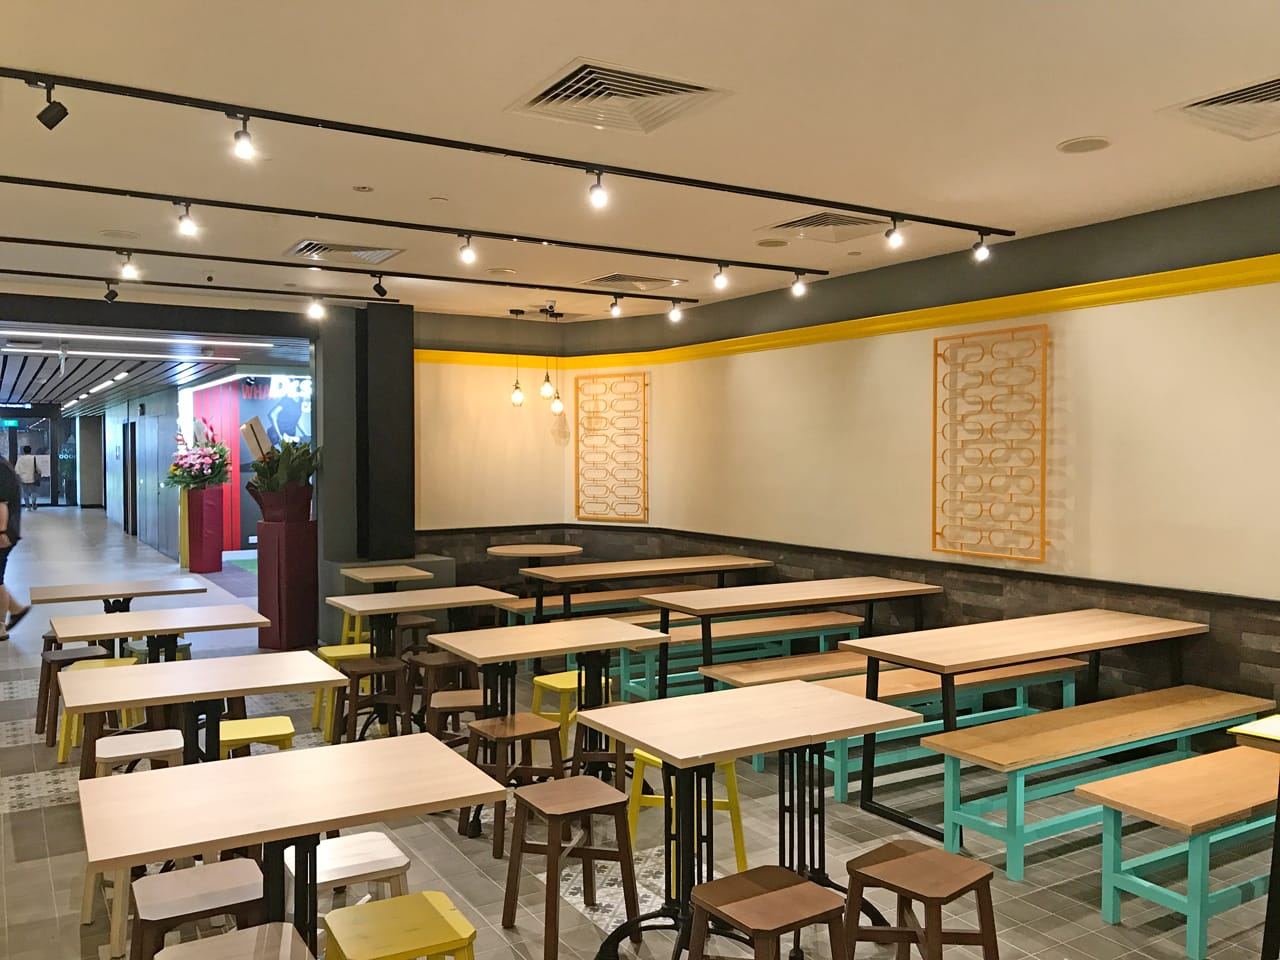 Curry Times by Old Chang Kee - Singpost Centre | Products Seen: [Tang Stool – Square & Antique Table Base with Customised Tabletop]